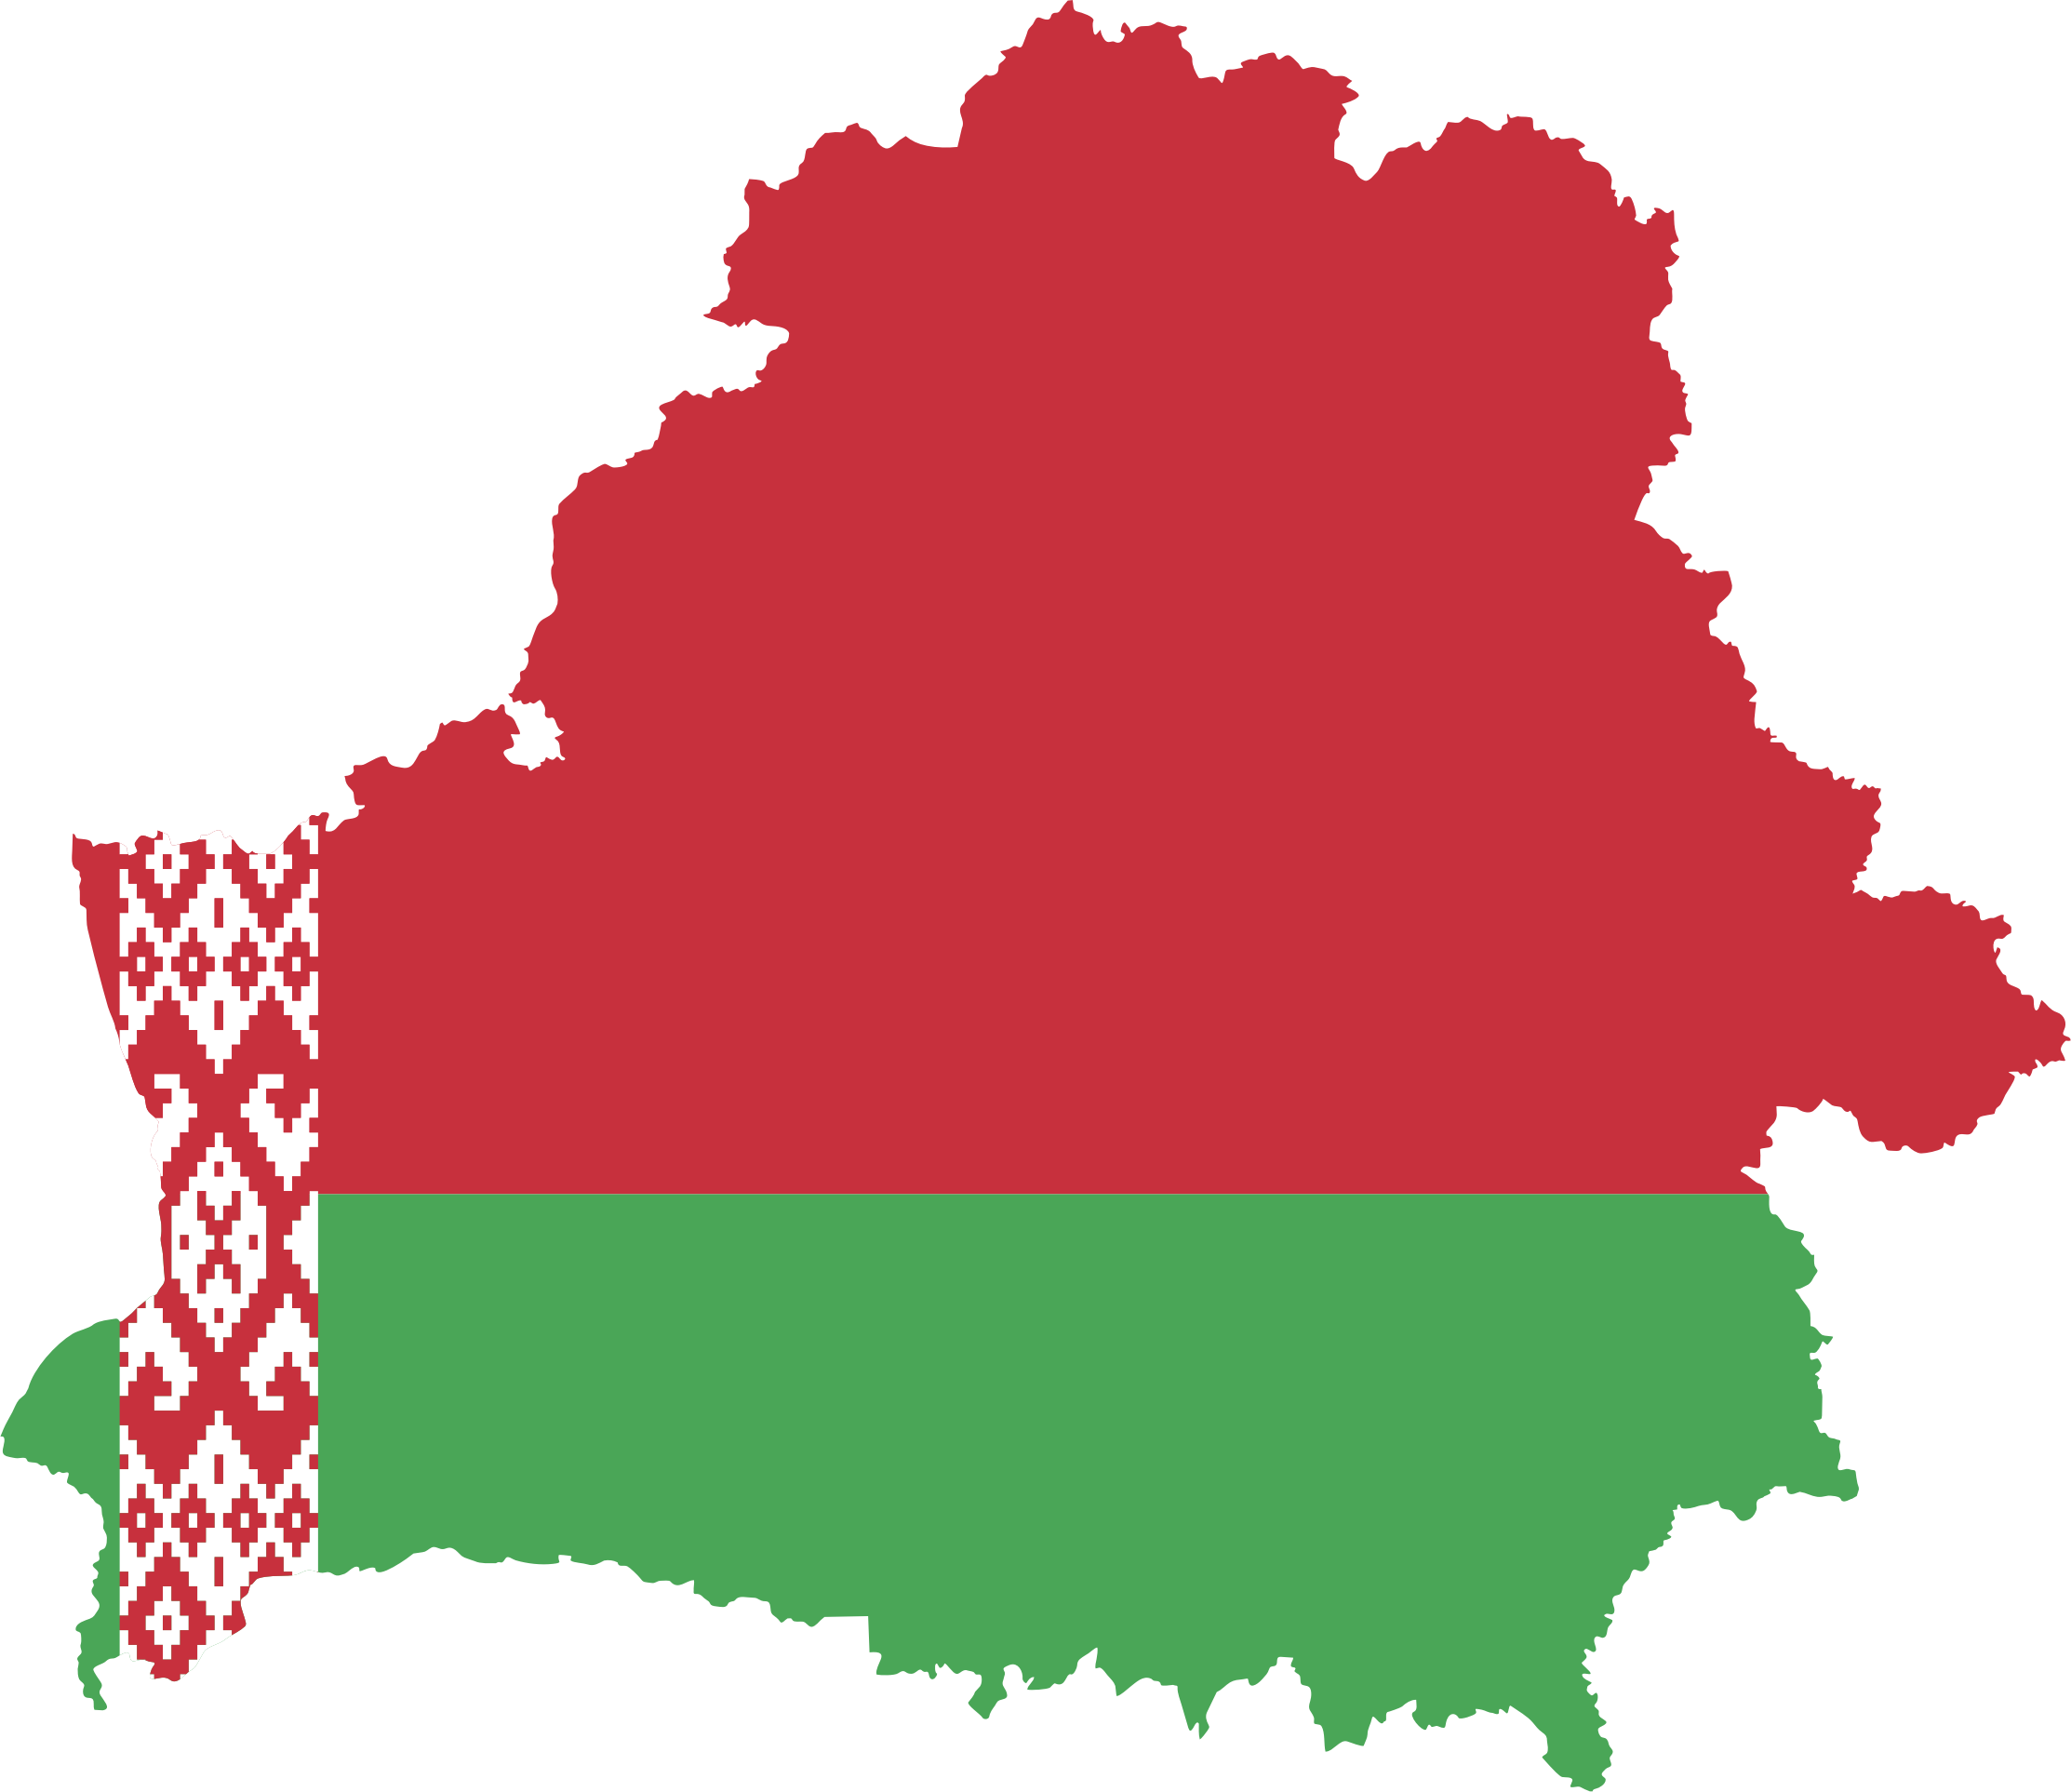 Belarus Flag All about Belarus Flag colors, meaning